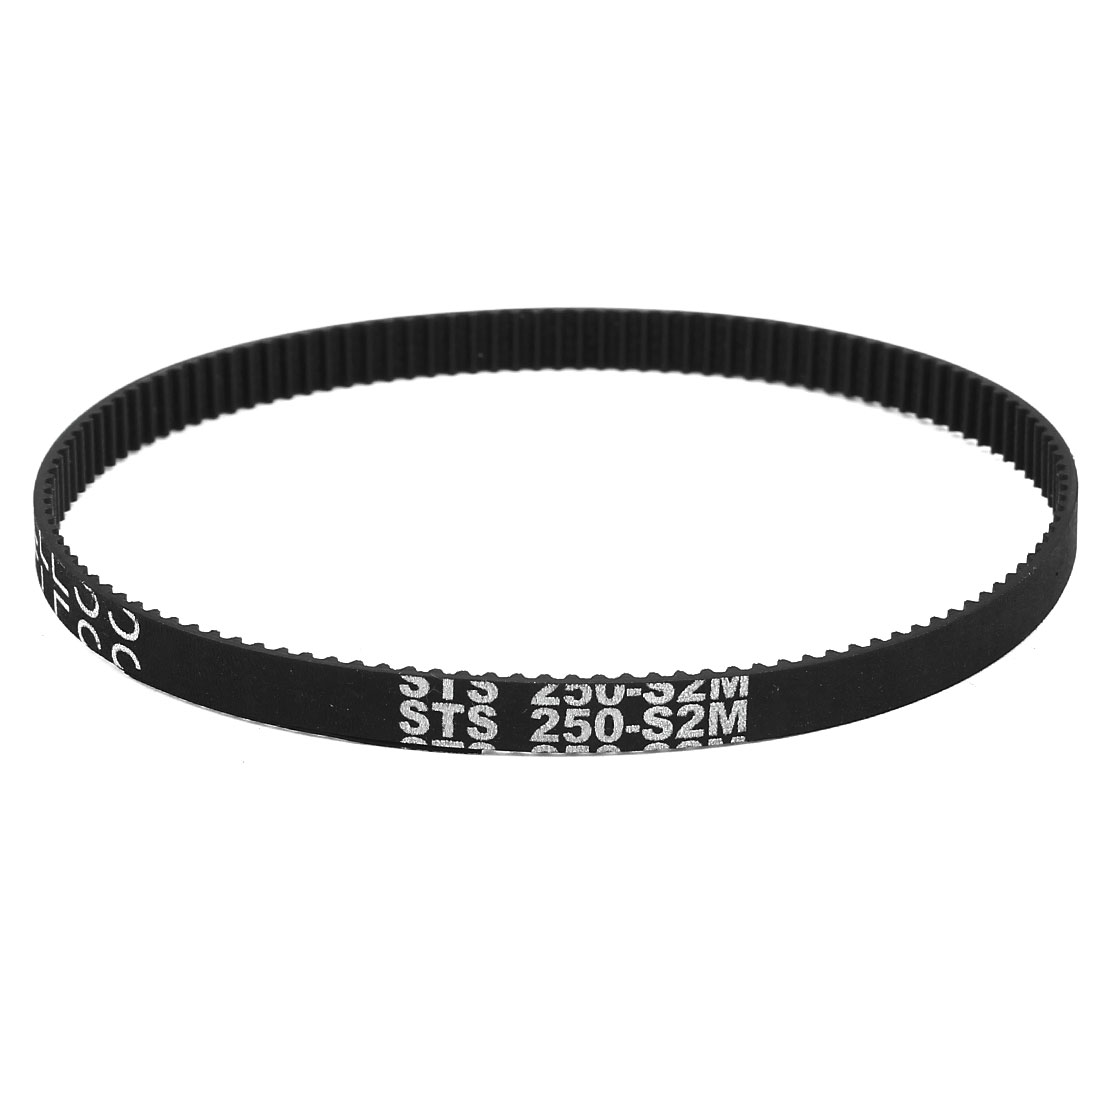 S2M-250 6mm Width 2mm Pitch 125T Engine Rubber Timing Belt for Stepper Motor